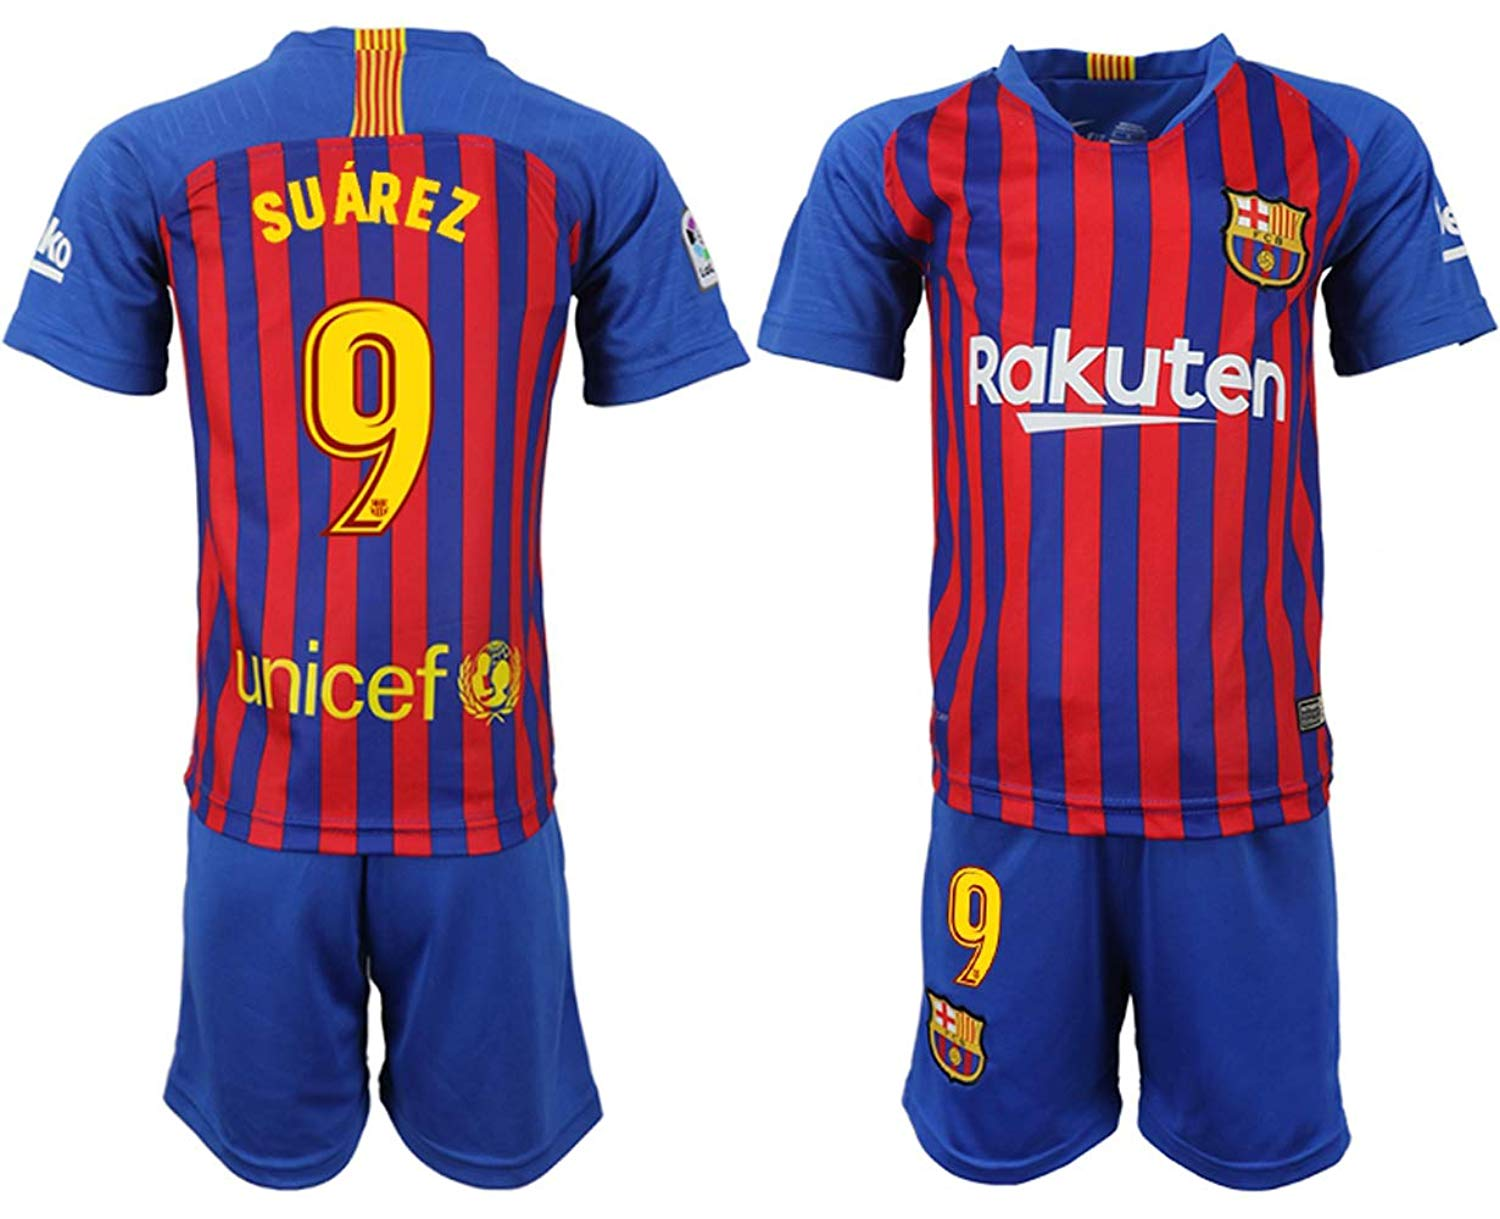 6b3d329d9 Get Quotations · Kaari 2018 19 The New Barcelona Suarez Kid s Soccer Jersey